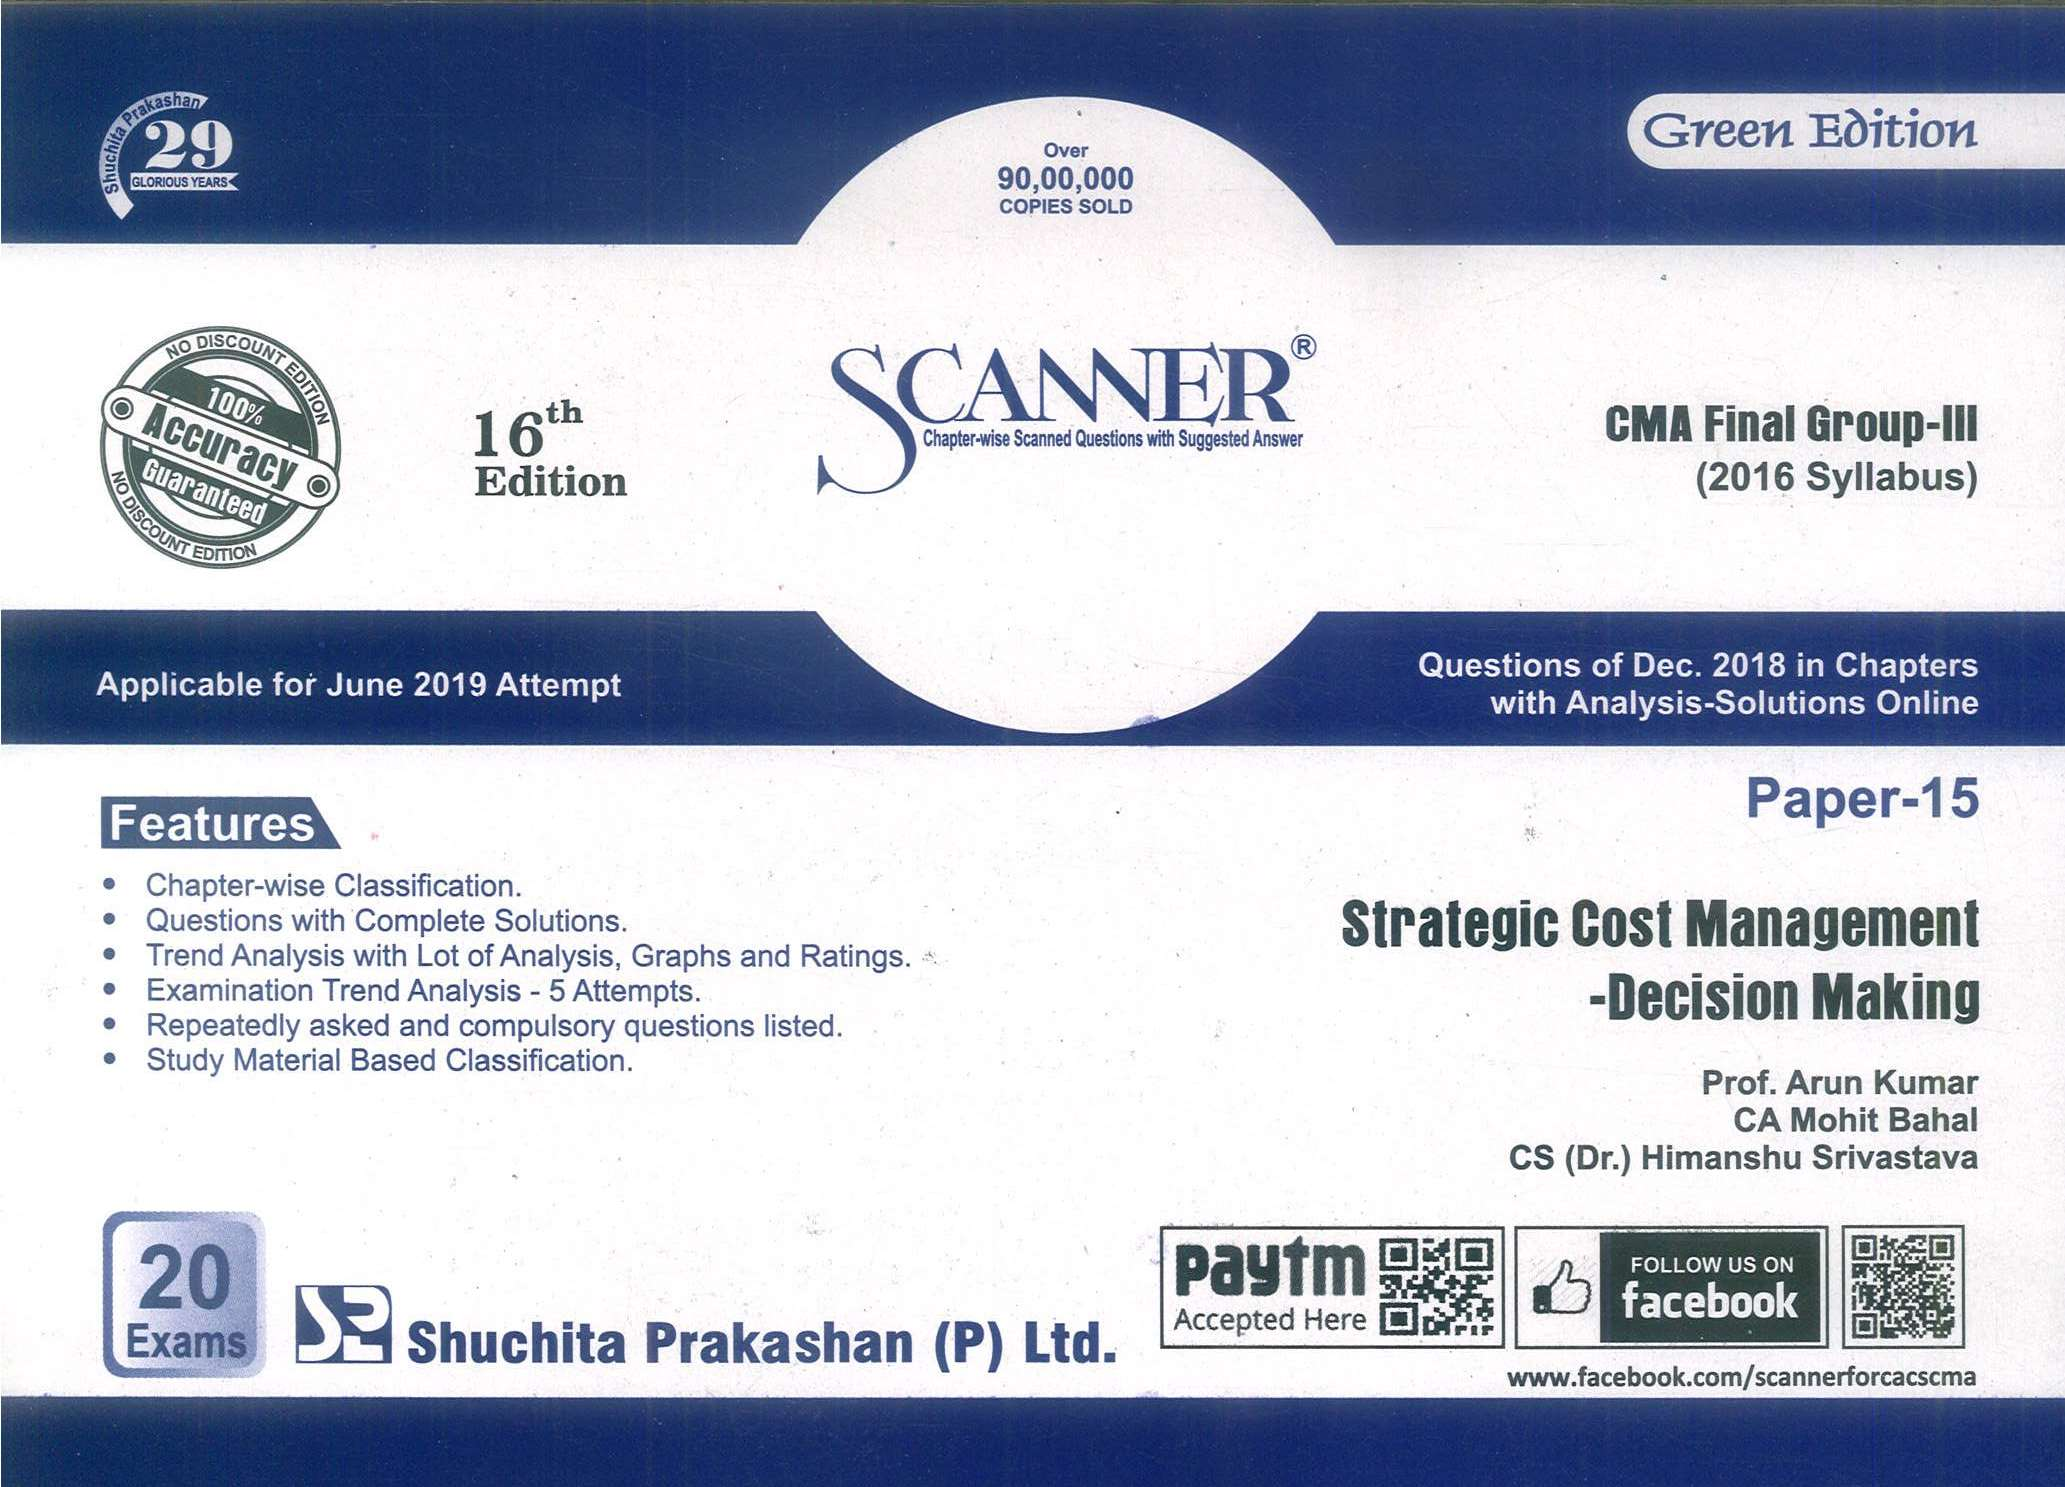 Shuchita Solved Scanner Strategic Cost Management-Decision Making for CMA Final Group III Paper 15 New Syllabus for June 2019 Exam by Prof. Arun Kumar, CS Ajay Goenka, CA Mohit Bahal and CS (Dr.) Himanshu Srivastava (Shuchita Prakashan) 16th Edition 2019